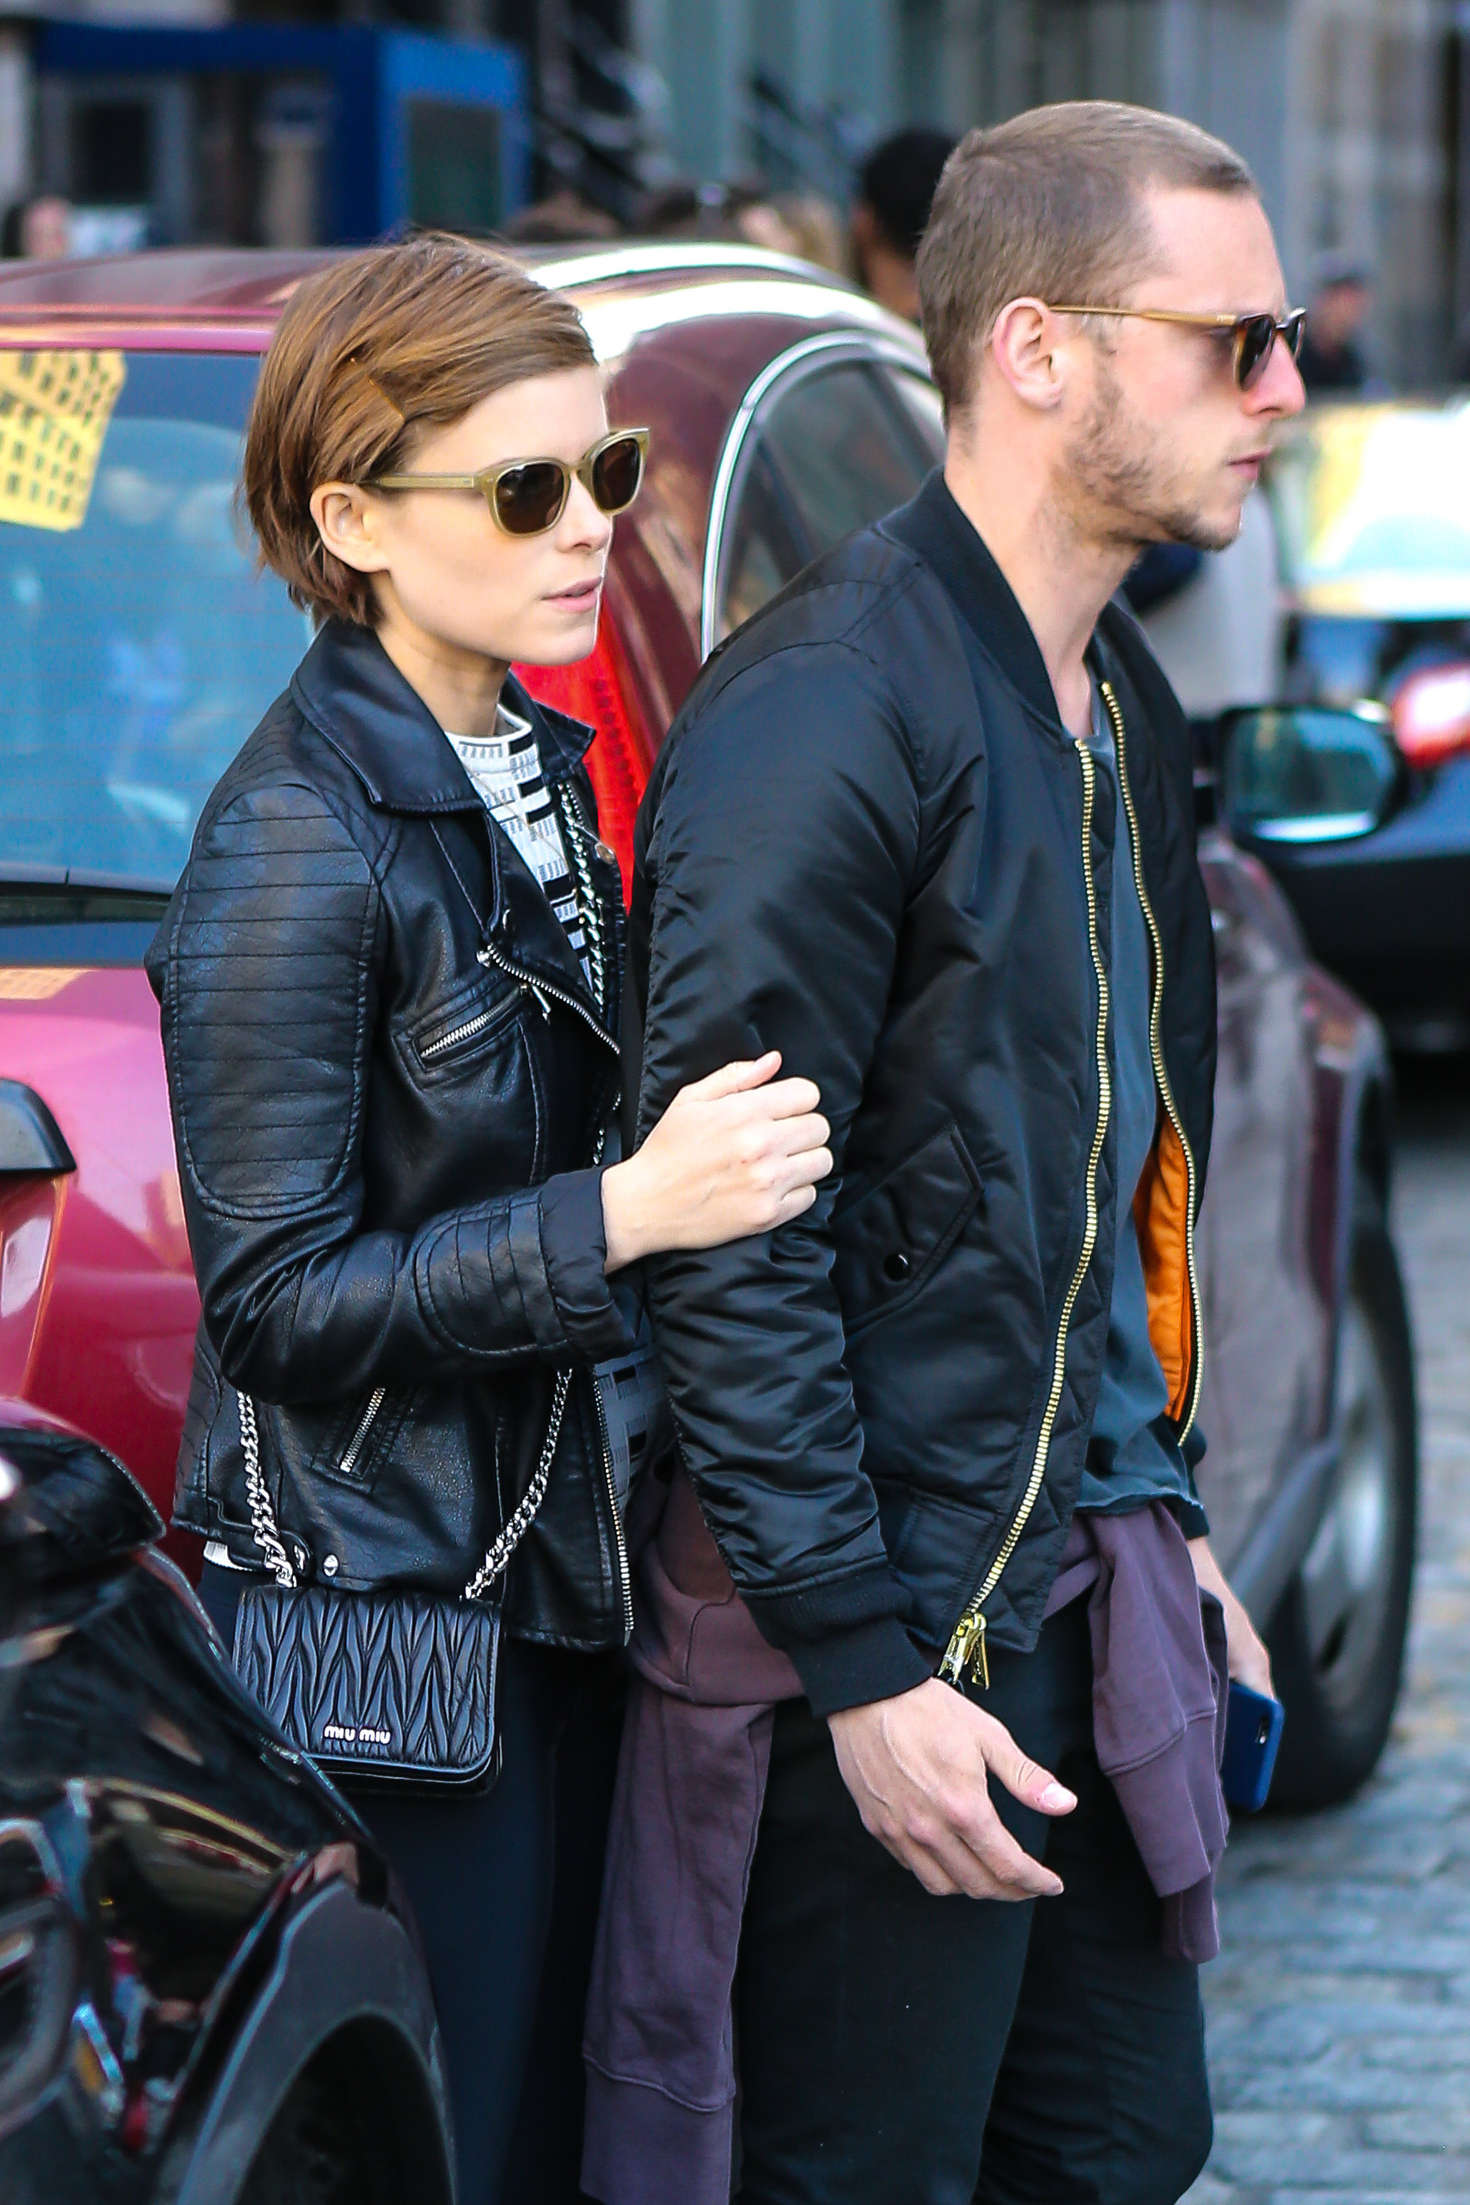 Kate Mara with boyfriend out in New York City